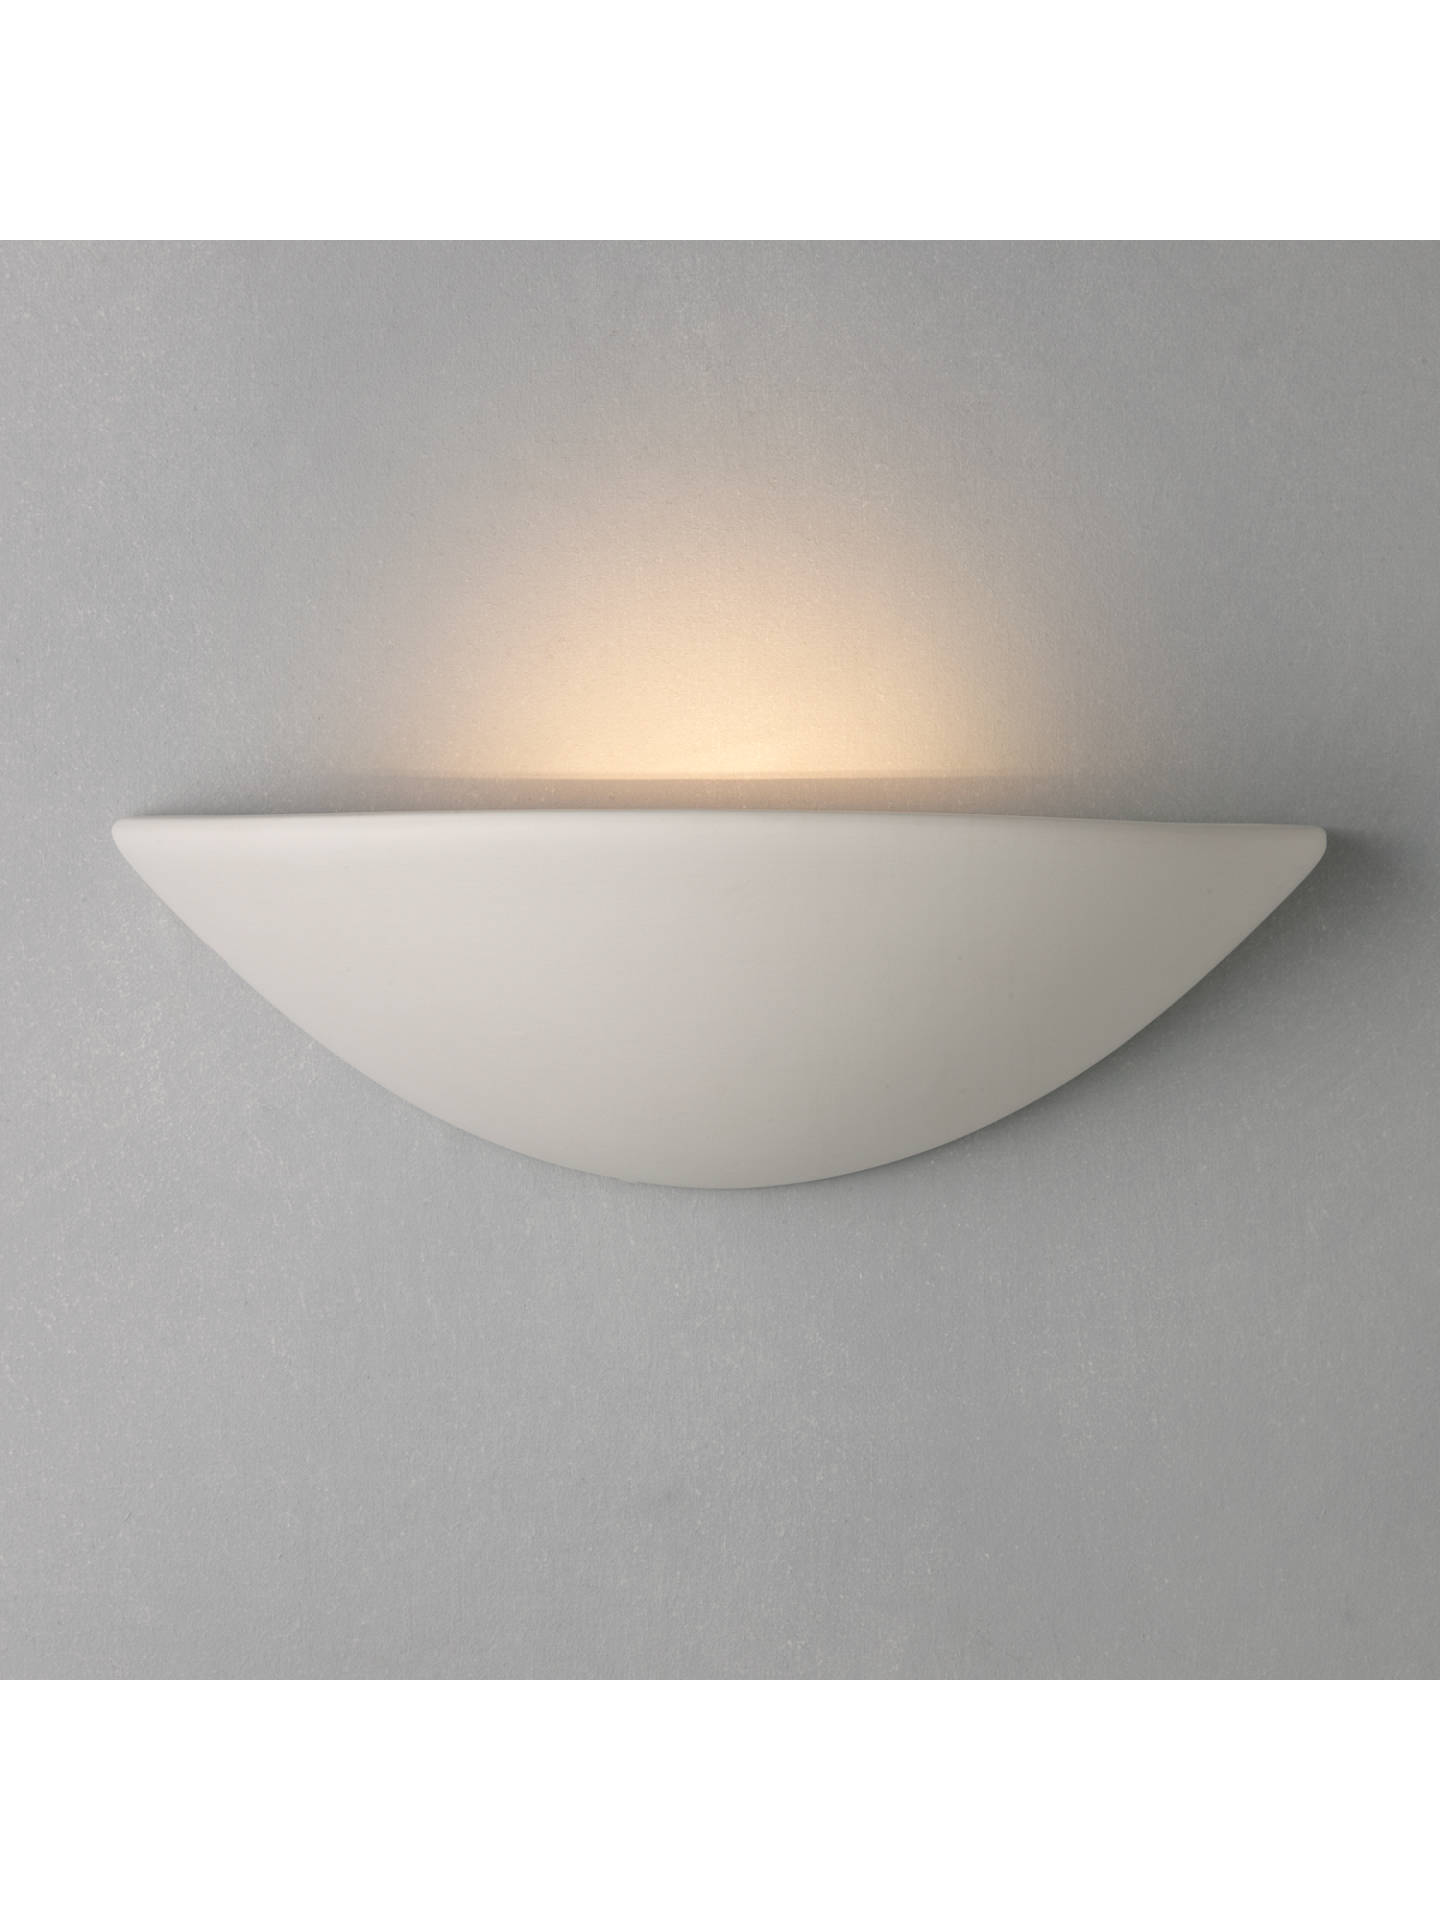 low priced f75a4 c718a John Lewis & Partners Radius Uplighter Wall Light, White